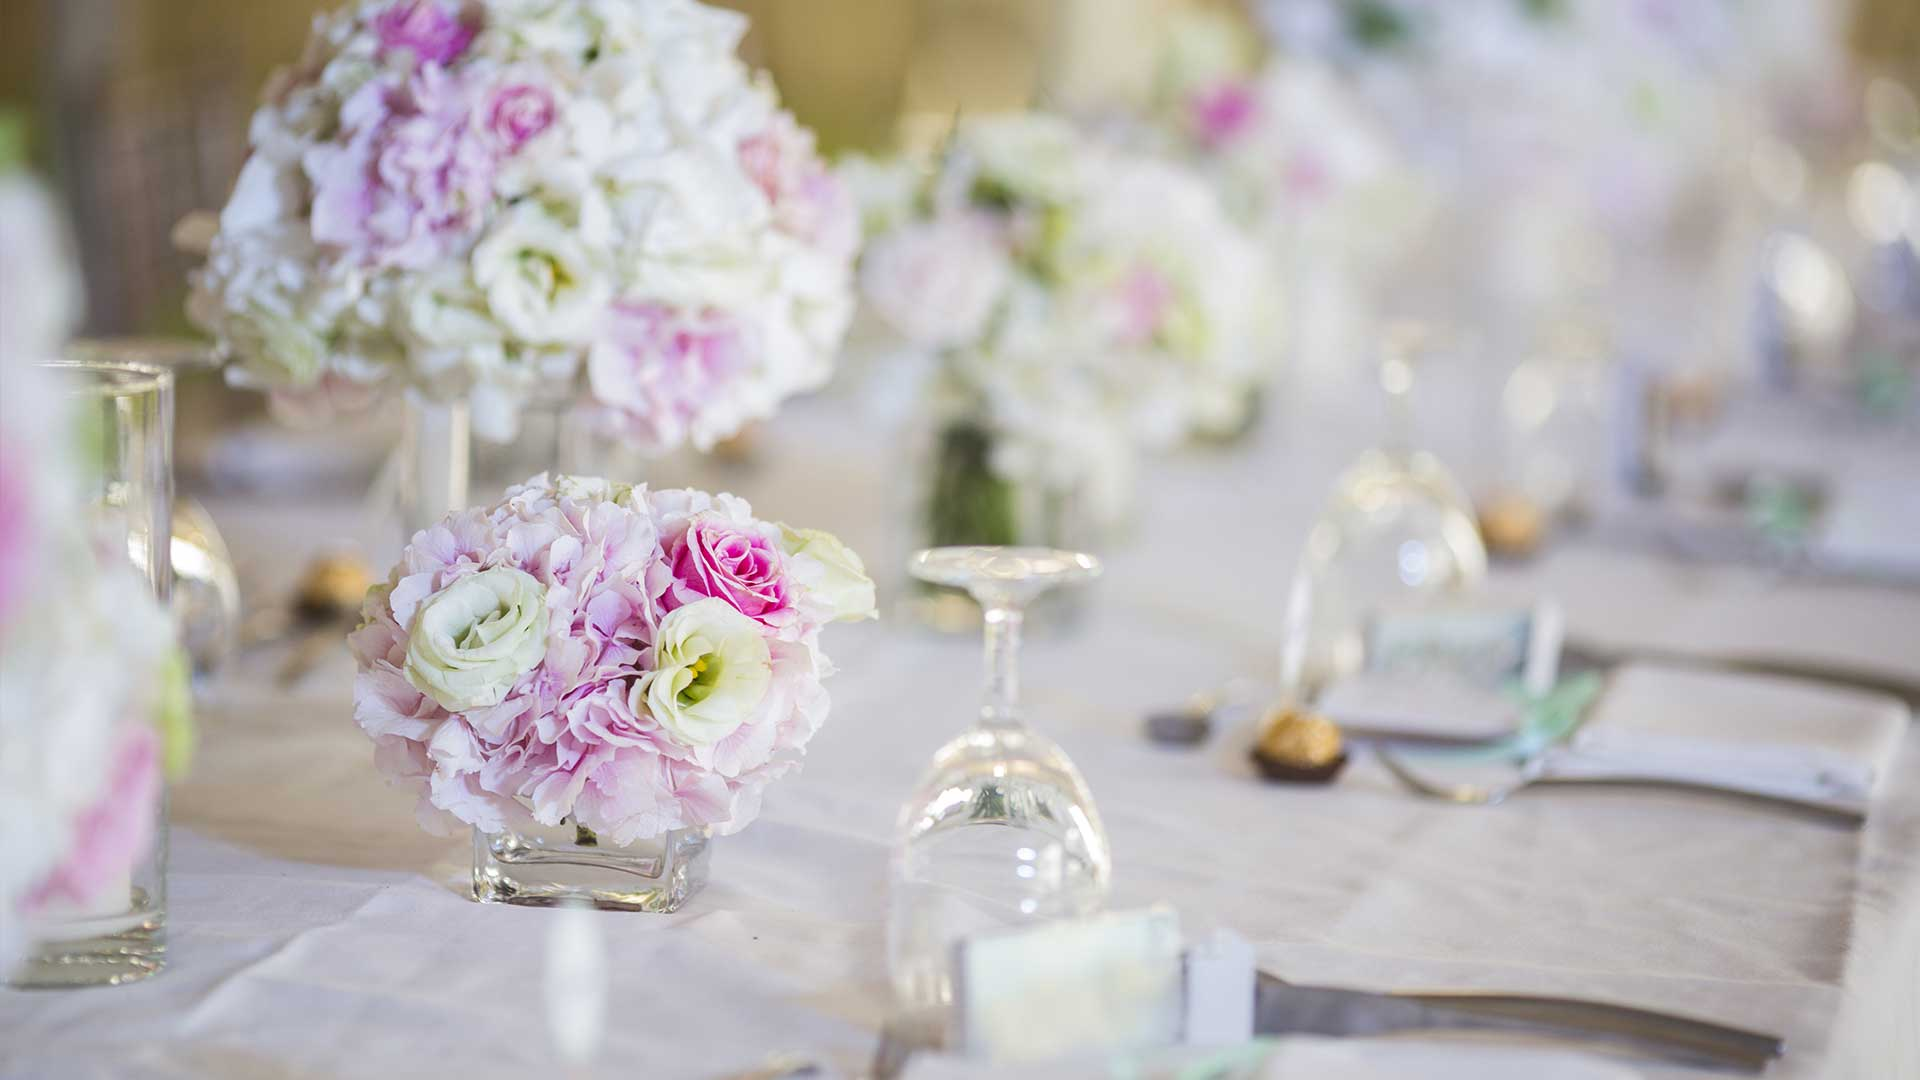 Top 4 Wedding Themes for Every Bridal Style - Bounce & Party